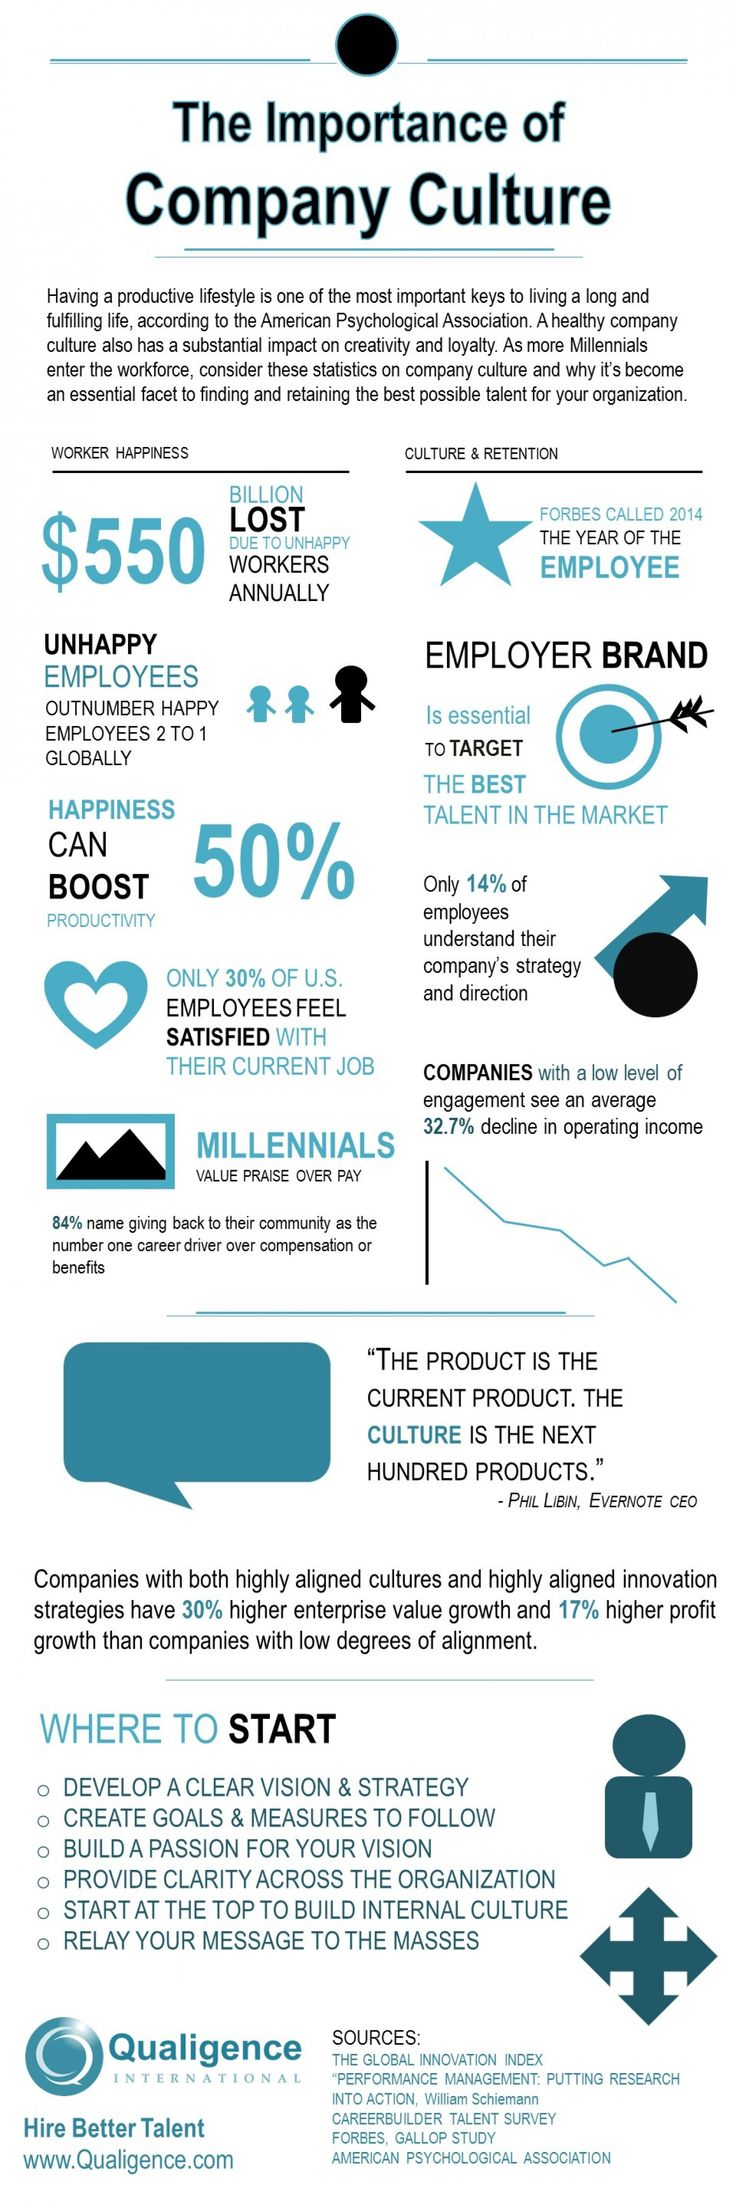 The Importance of Company Culture Infographic